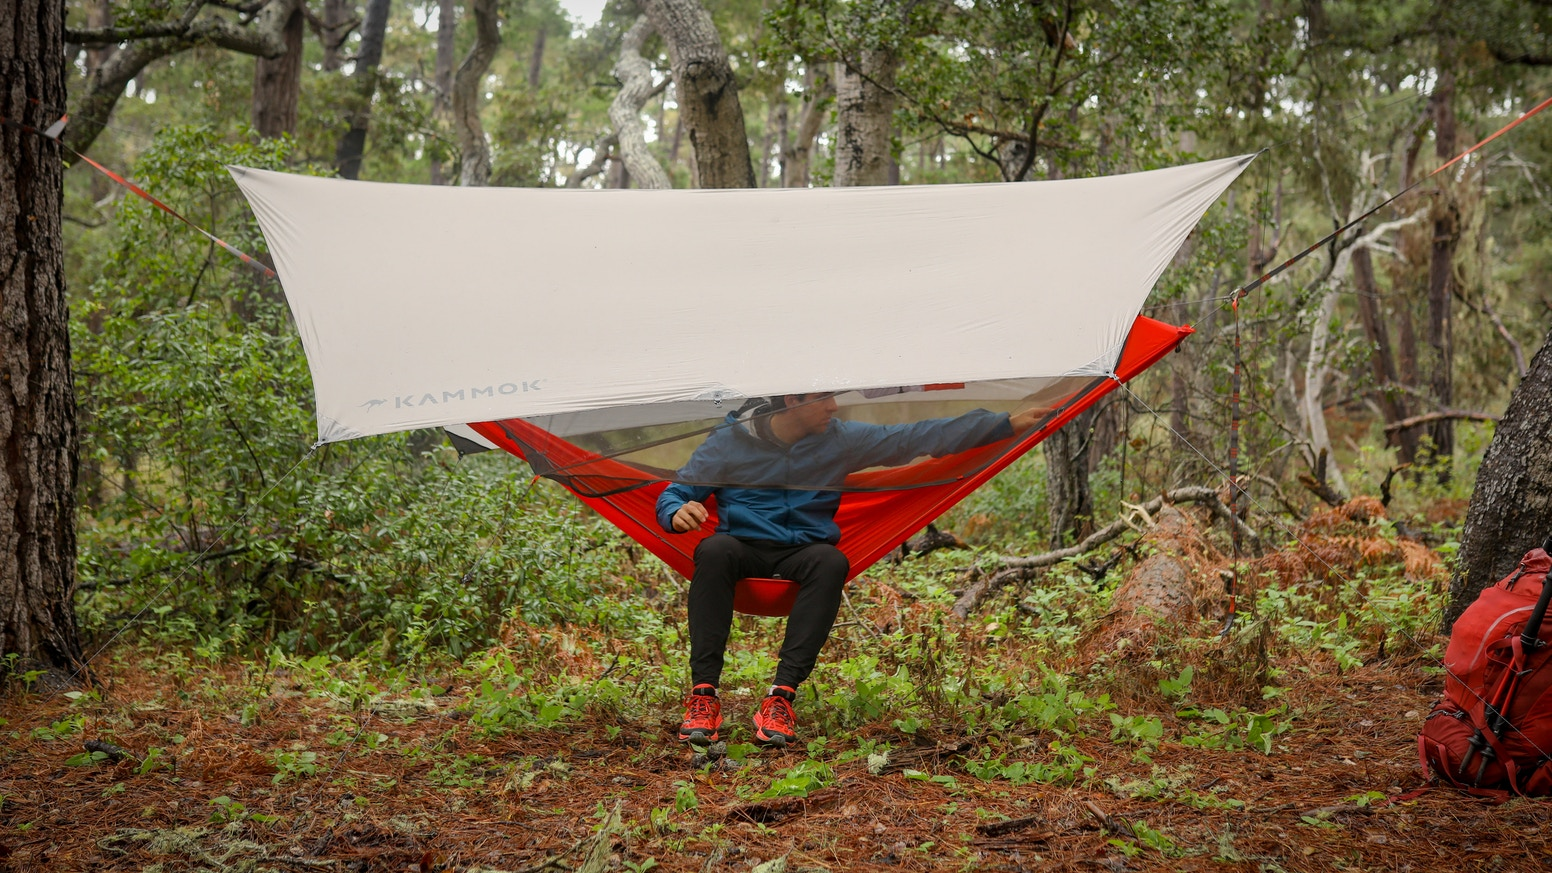 A lightweight, all-in-one hammock tent designed to elevate backcountry camp. The Mantis offers the best night's sleep, off the ground.